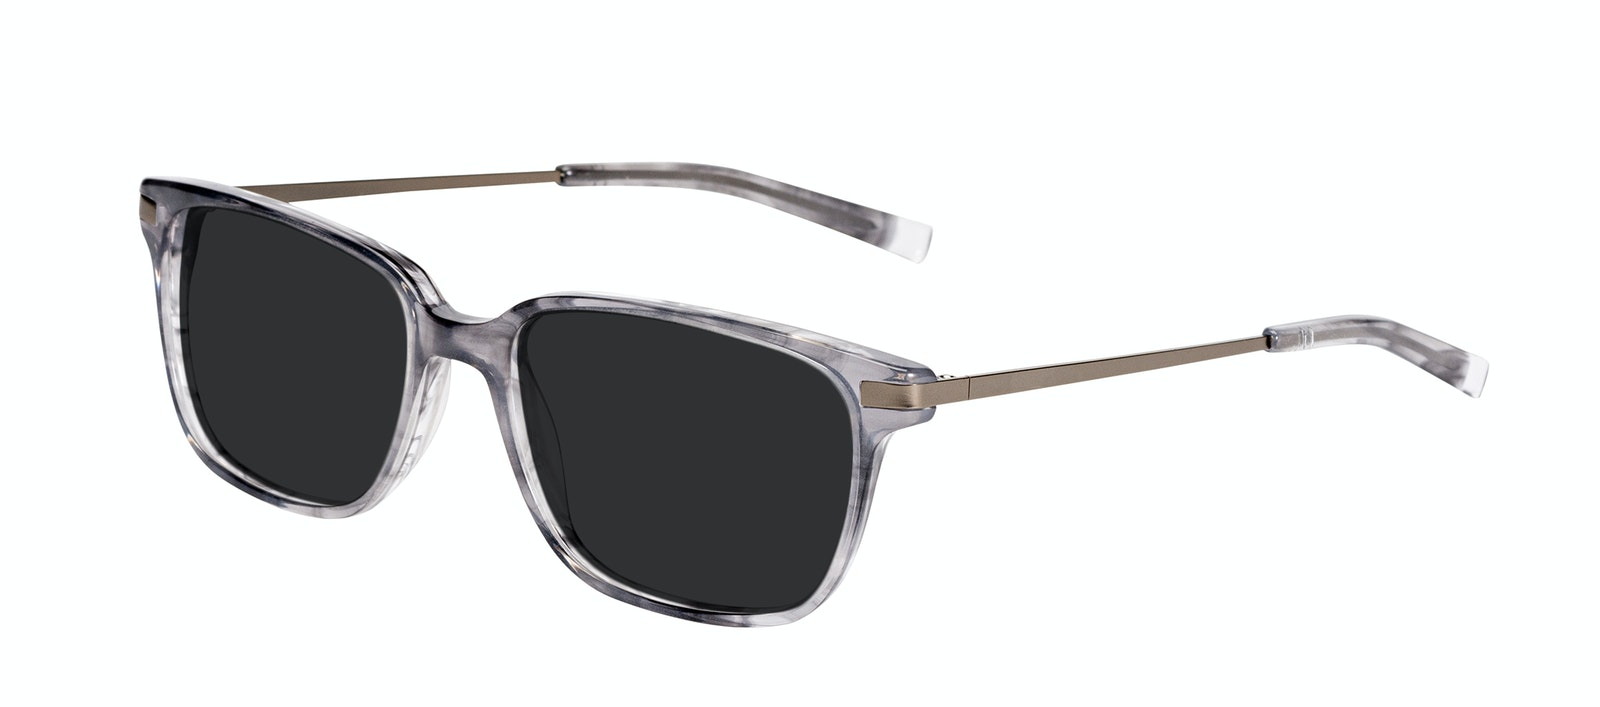 Affordable Fashion Glasses Rectangle Sunglasses Men Trade Smokey Grey Tilt